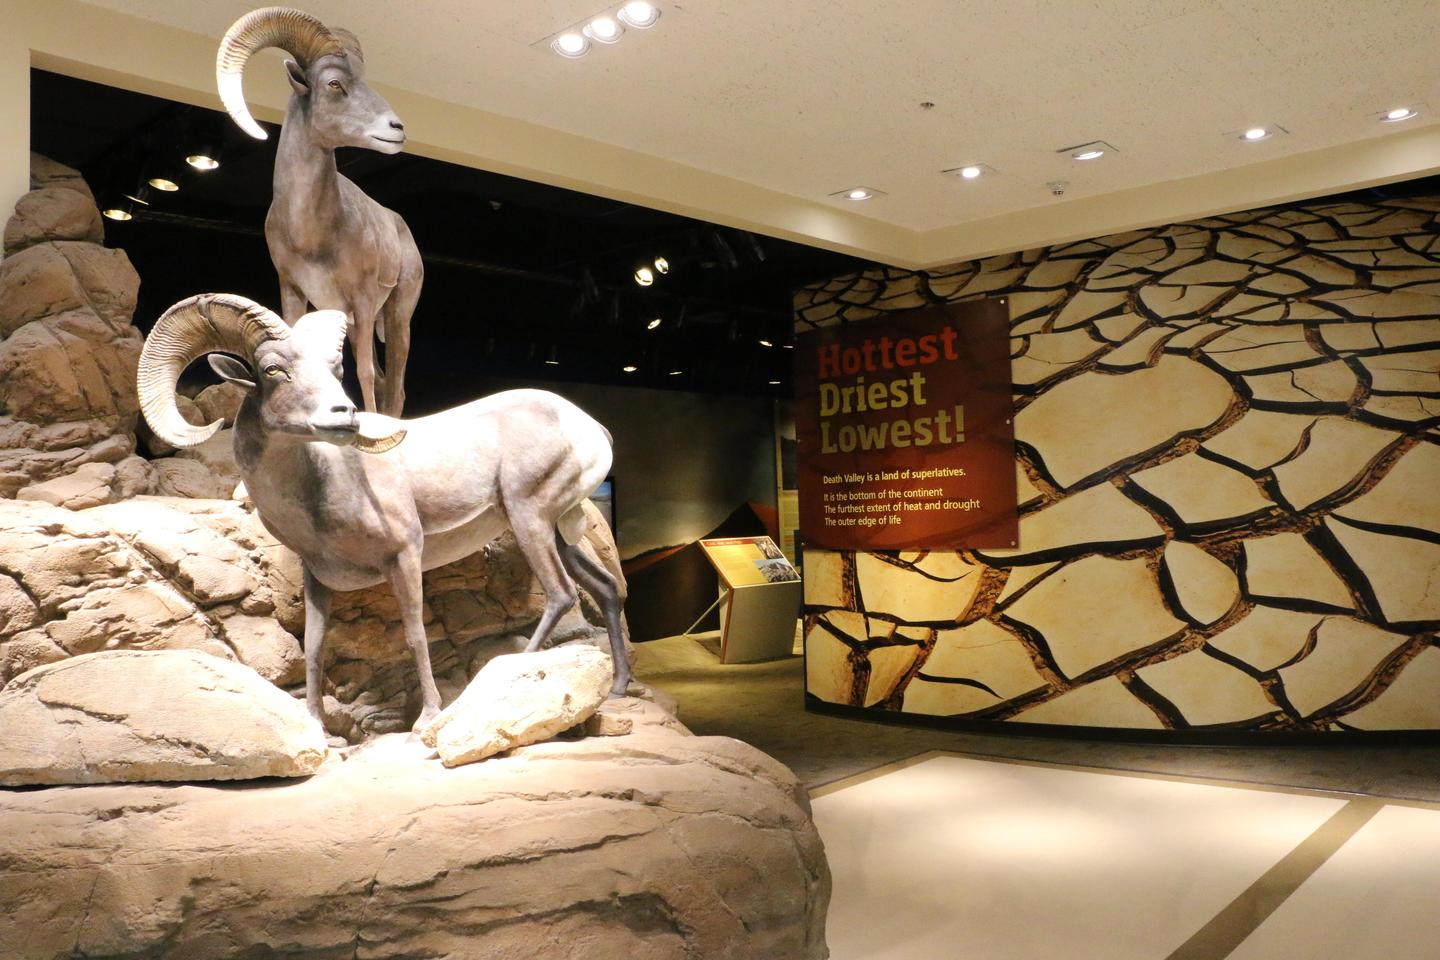 Visitor Center ExhibitsStatues of life-sized desert bighorn sheep meet visitors at the entrance to the exhibit hall.